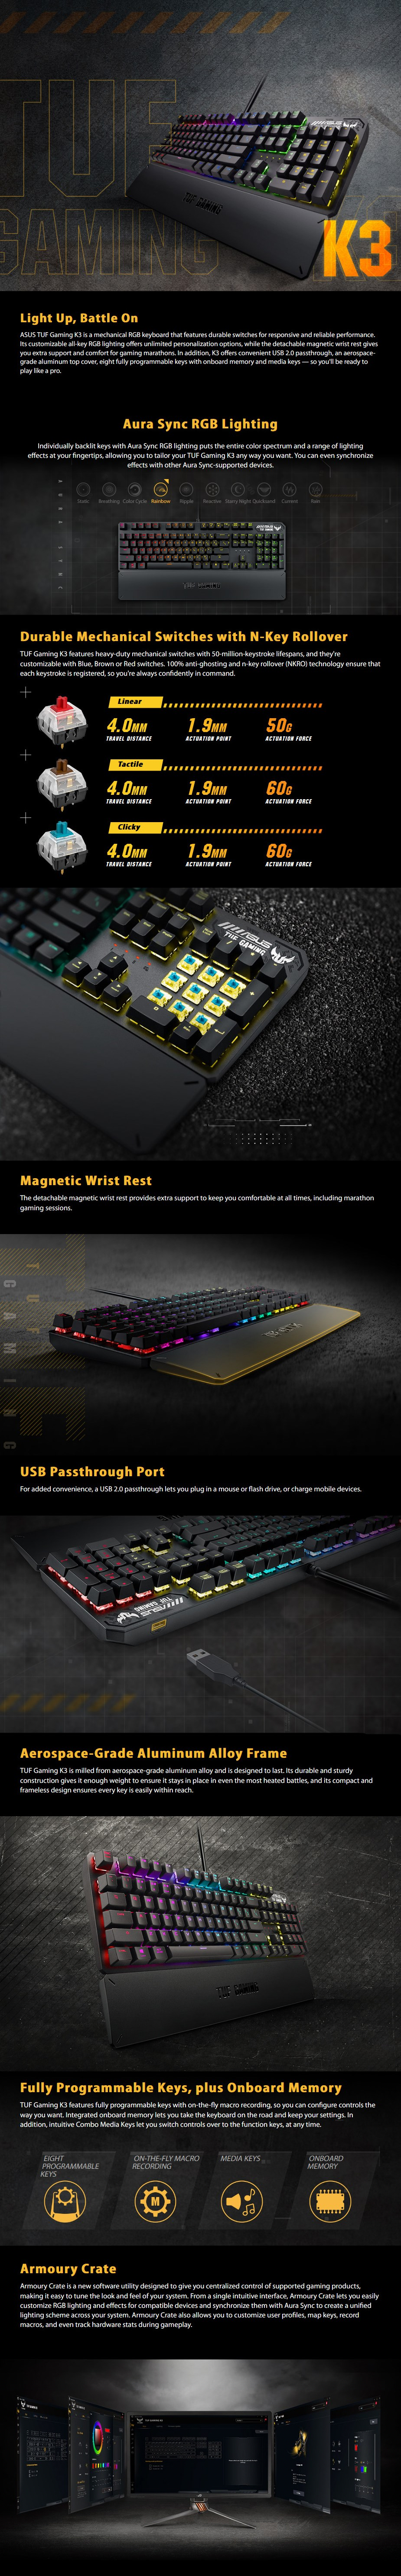 asus-tuf-gaming-k3-mechanical-gaming-keyboard-linear-switches-ac36804-4-1-.jpg